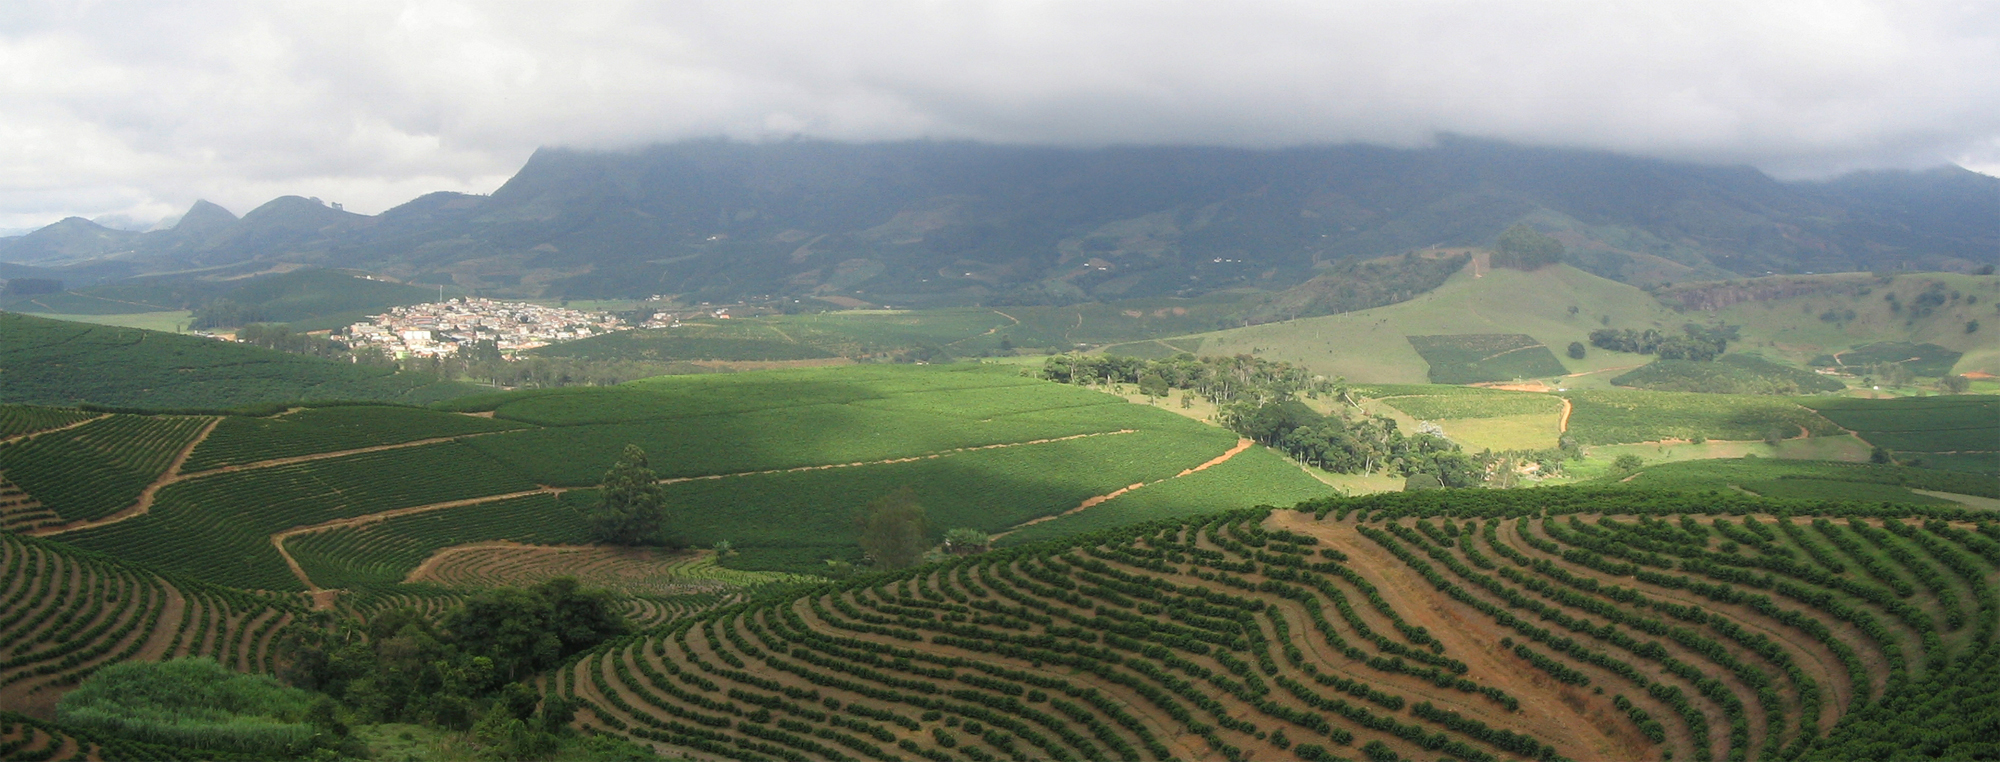 Sun grown coffee plantation in Brazil. Photo: Wikimedia Commons.